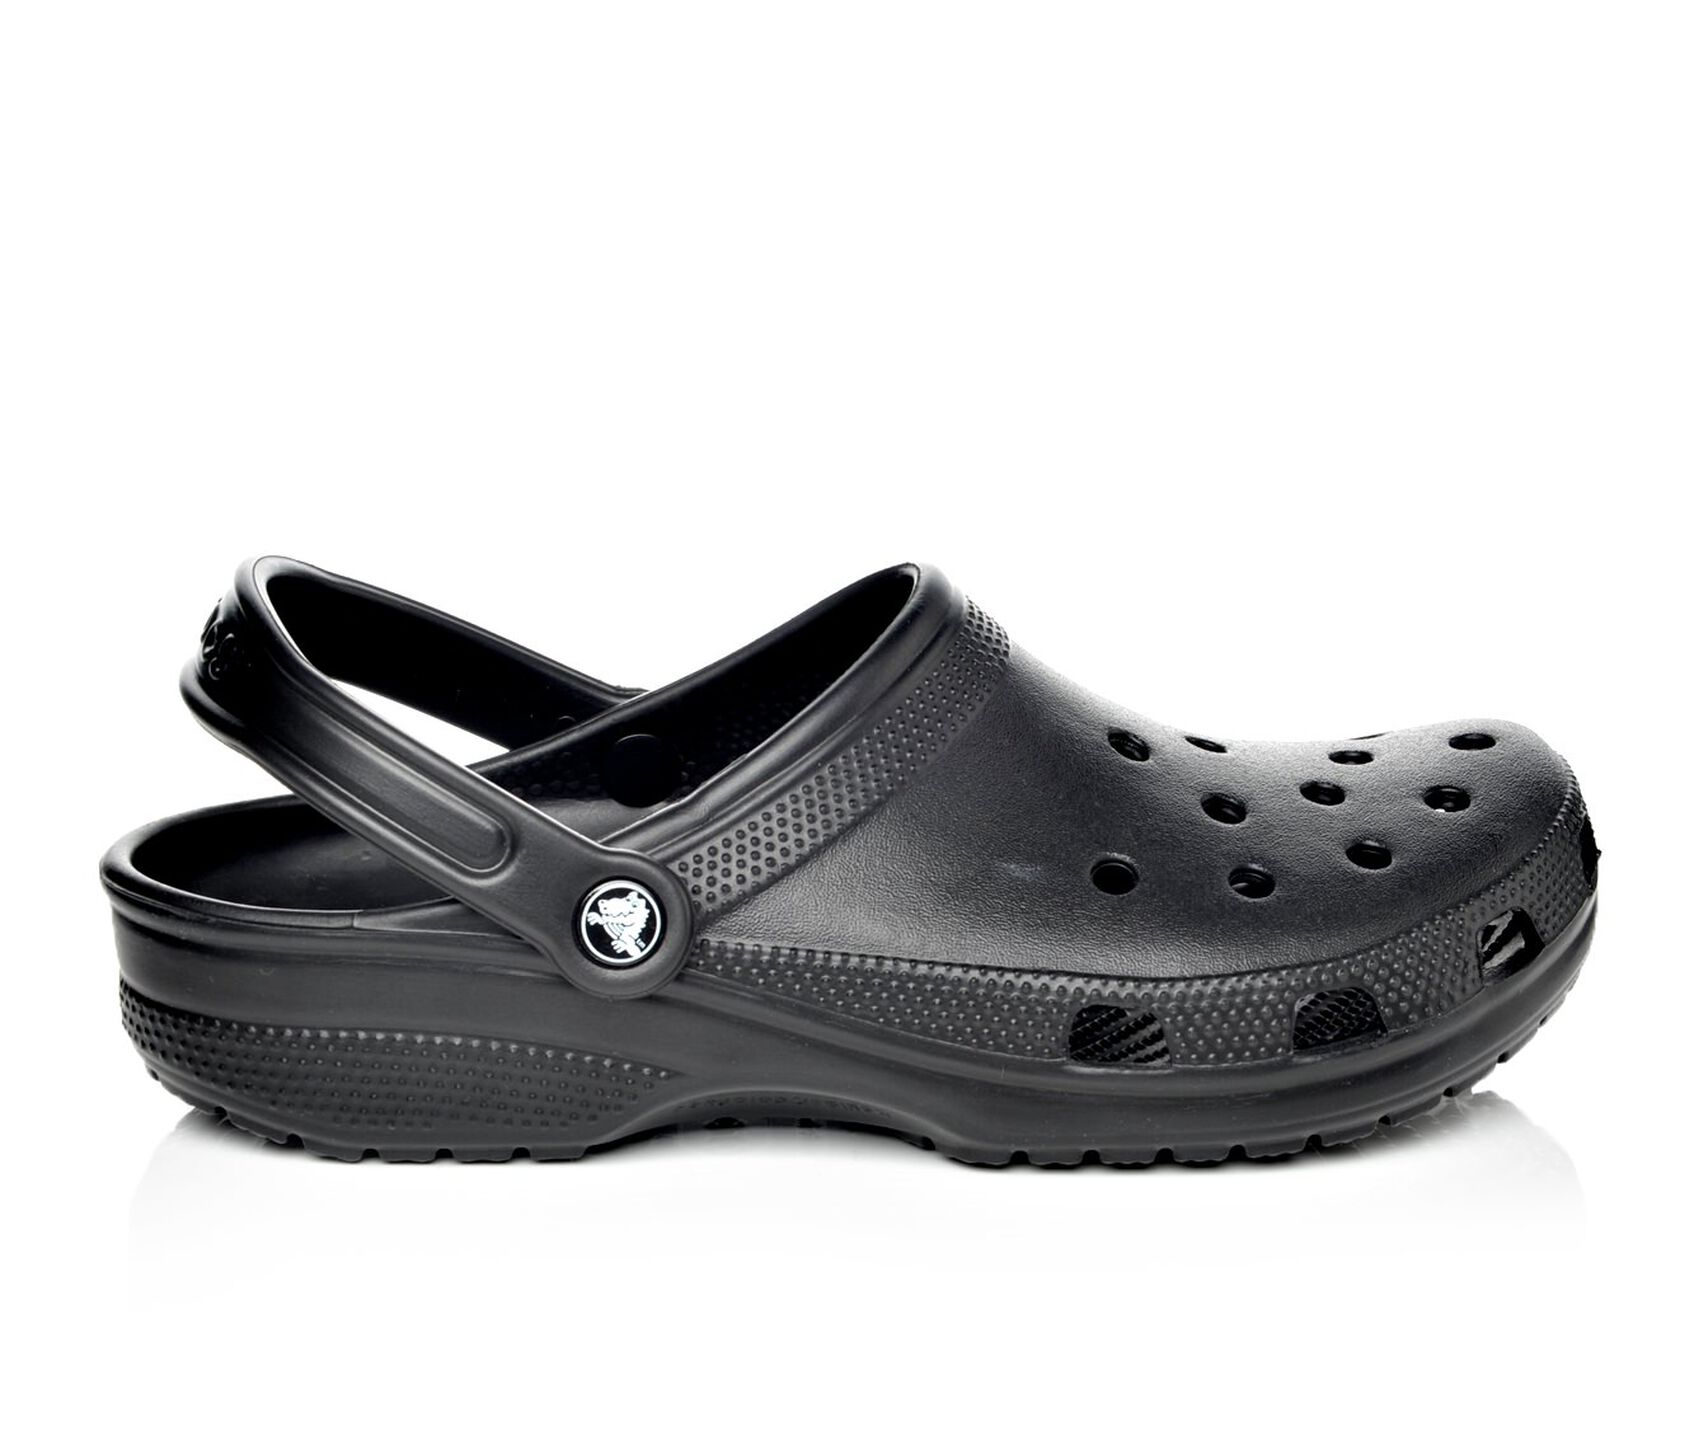 Men's Crocs Classic-M Clogs | Shoe Carnival